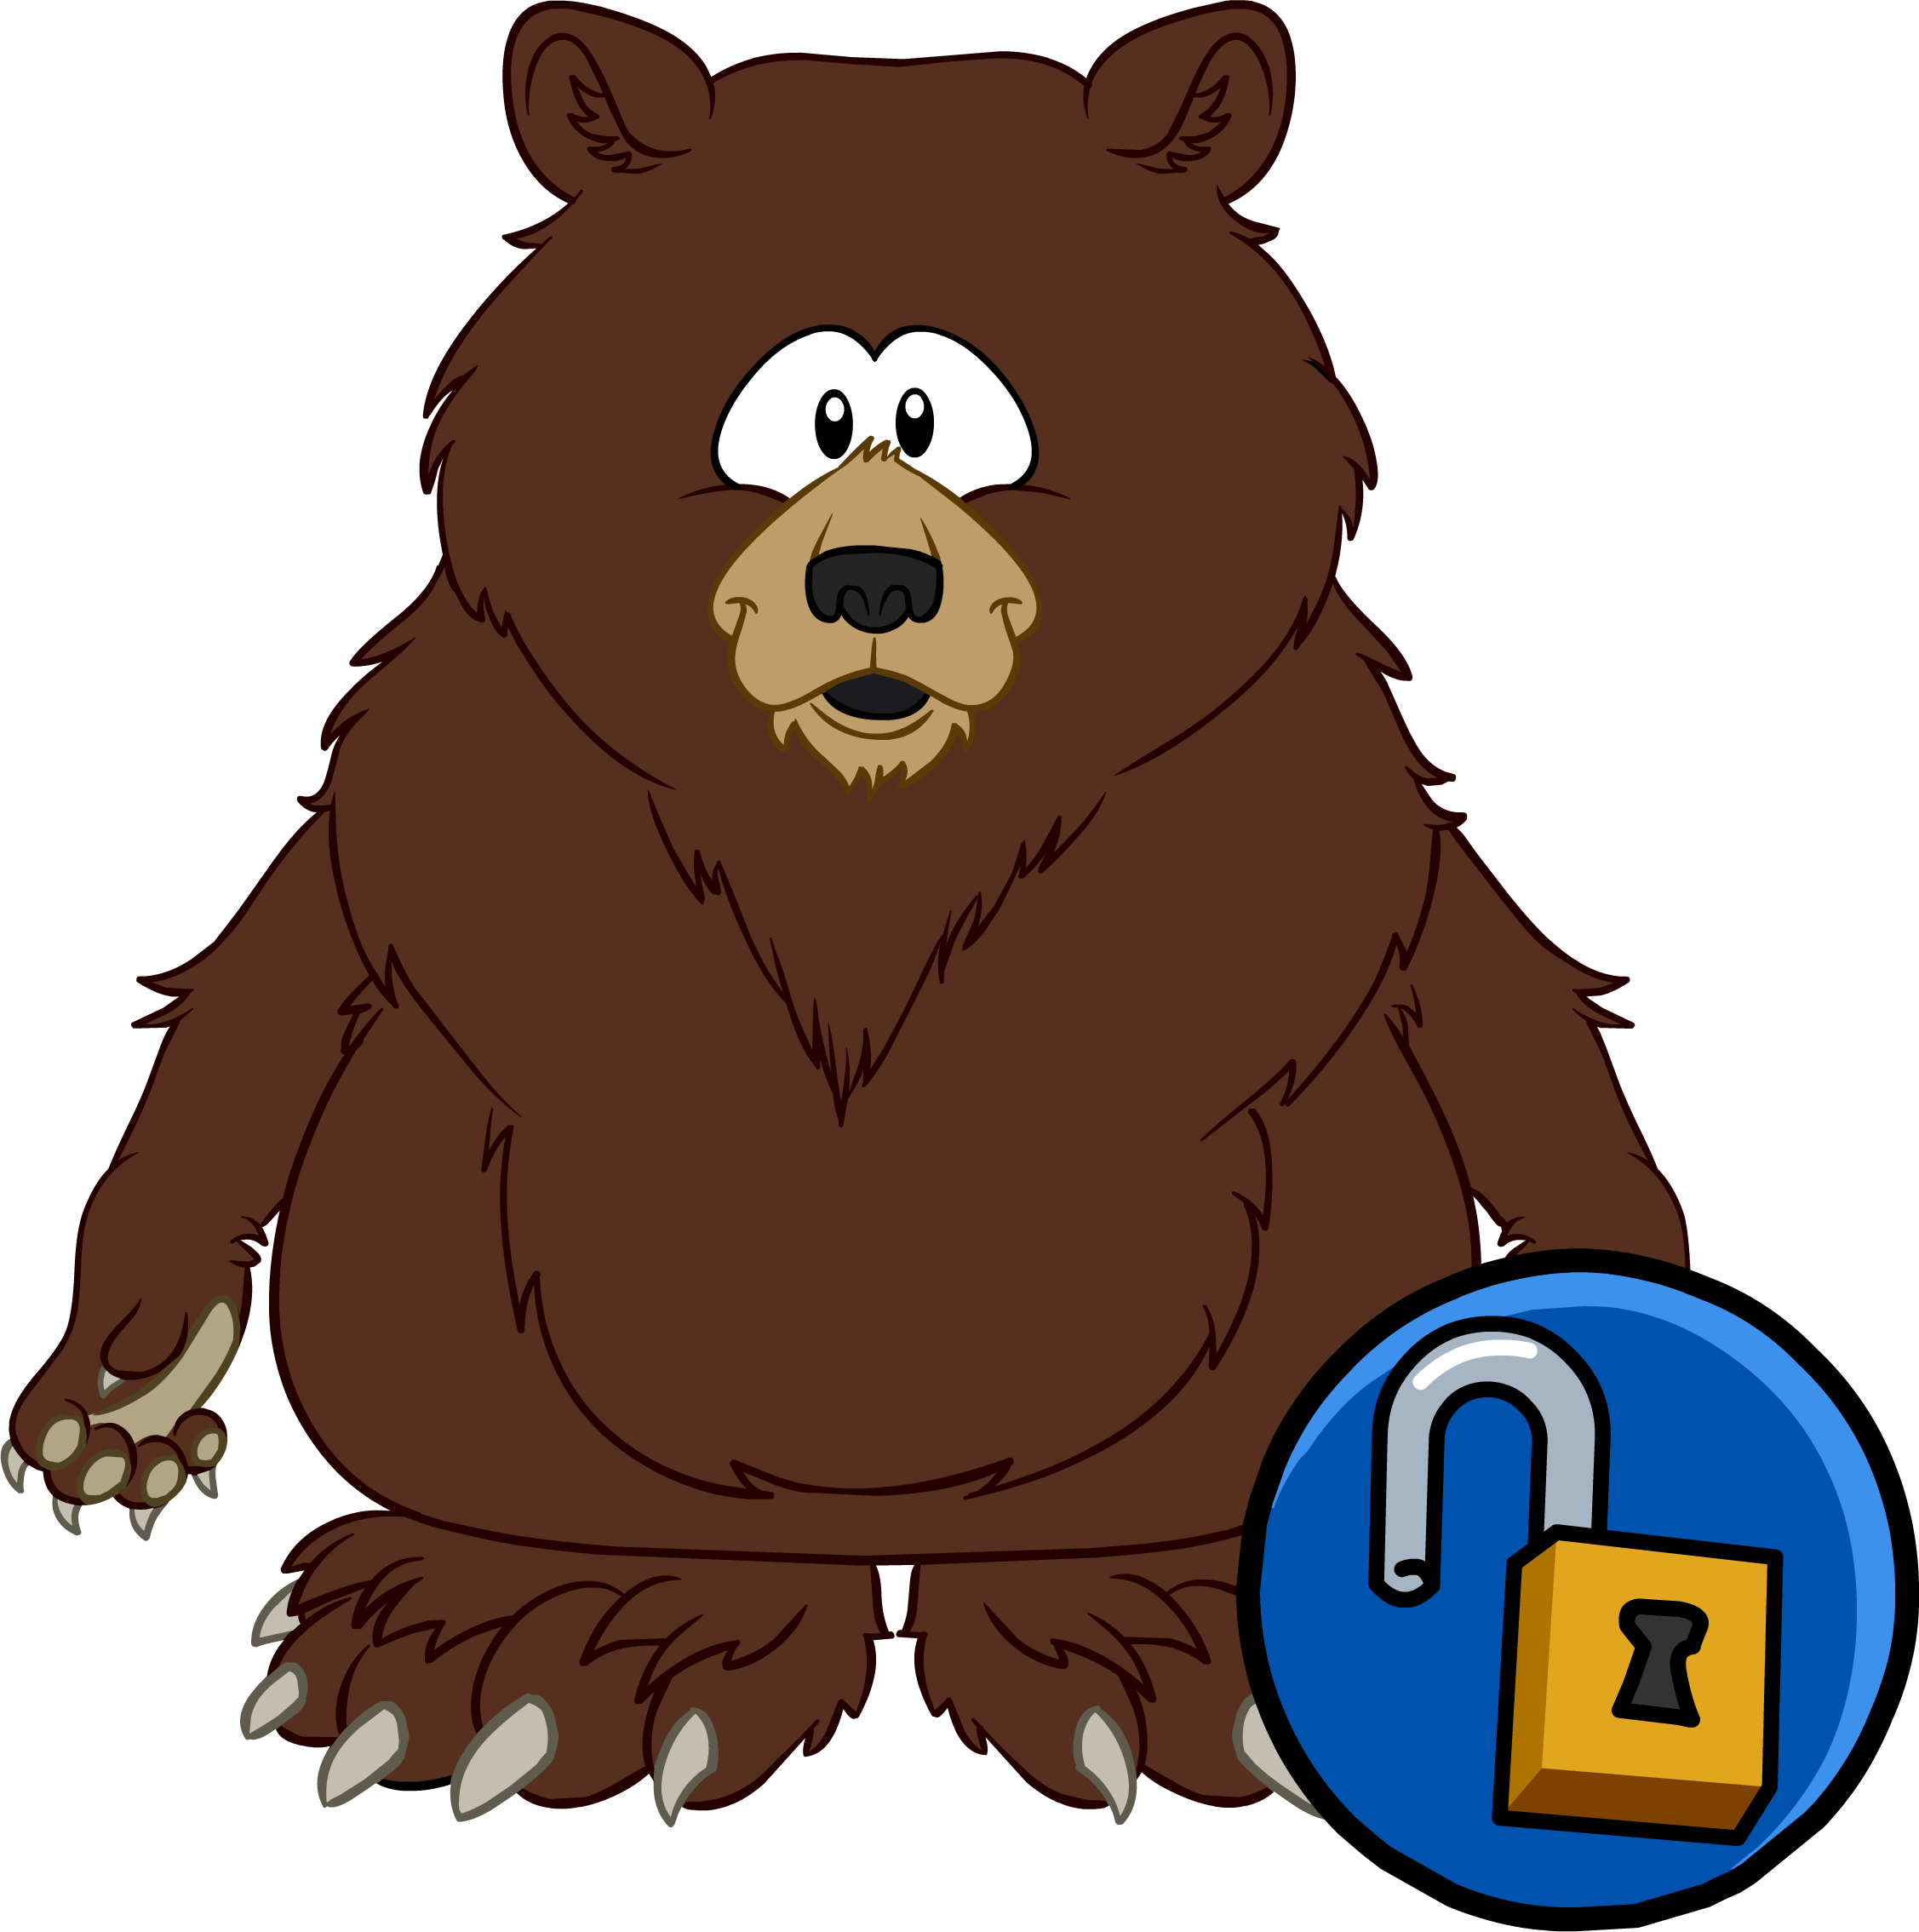 Groundhog clipart top hat. Image bear costume icon